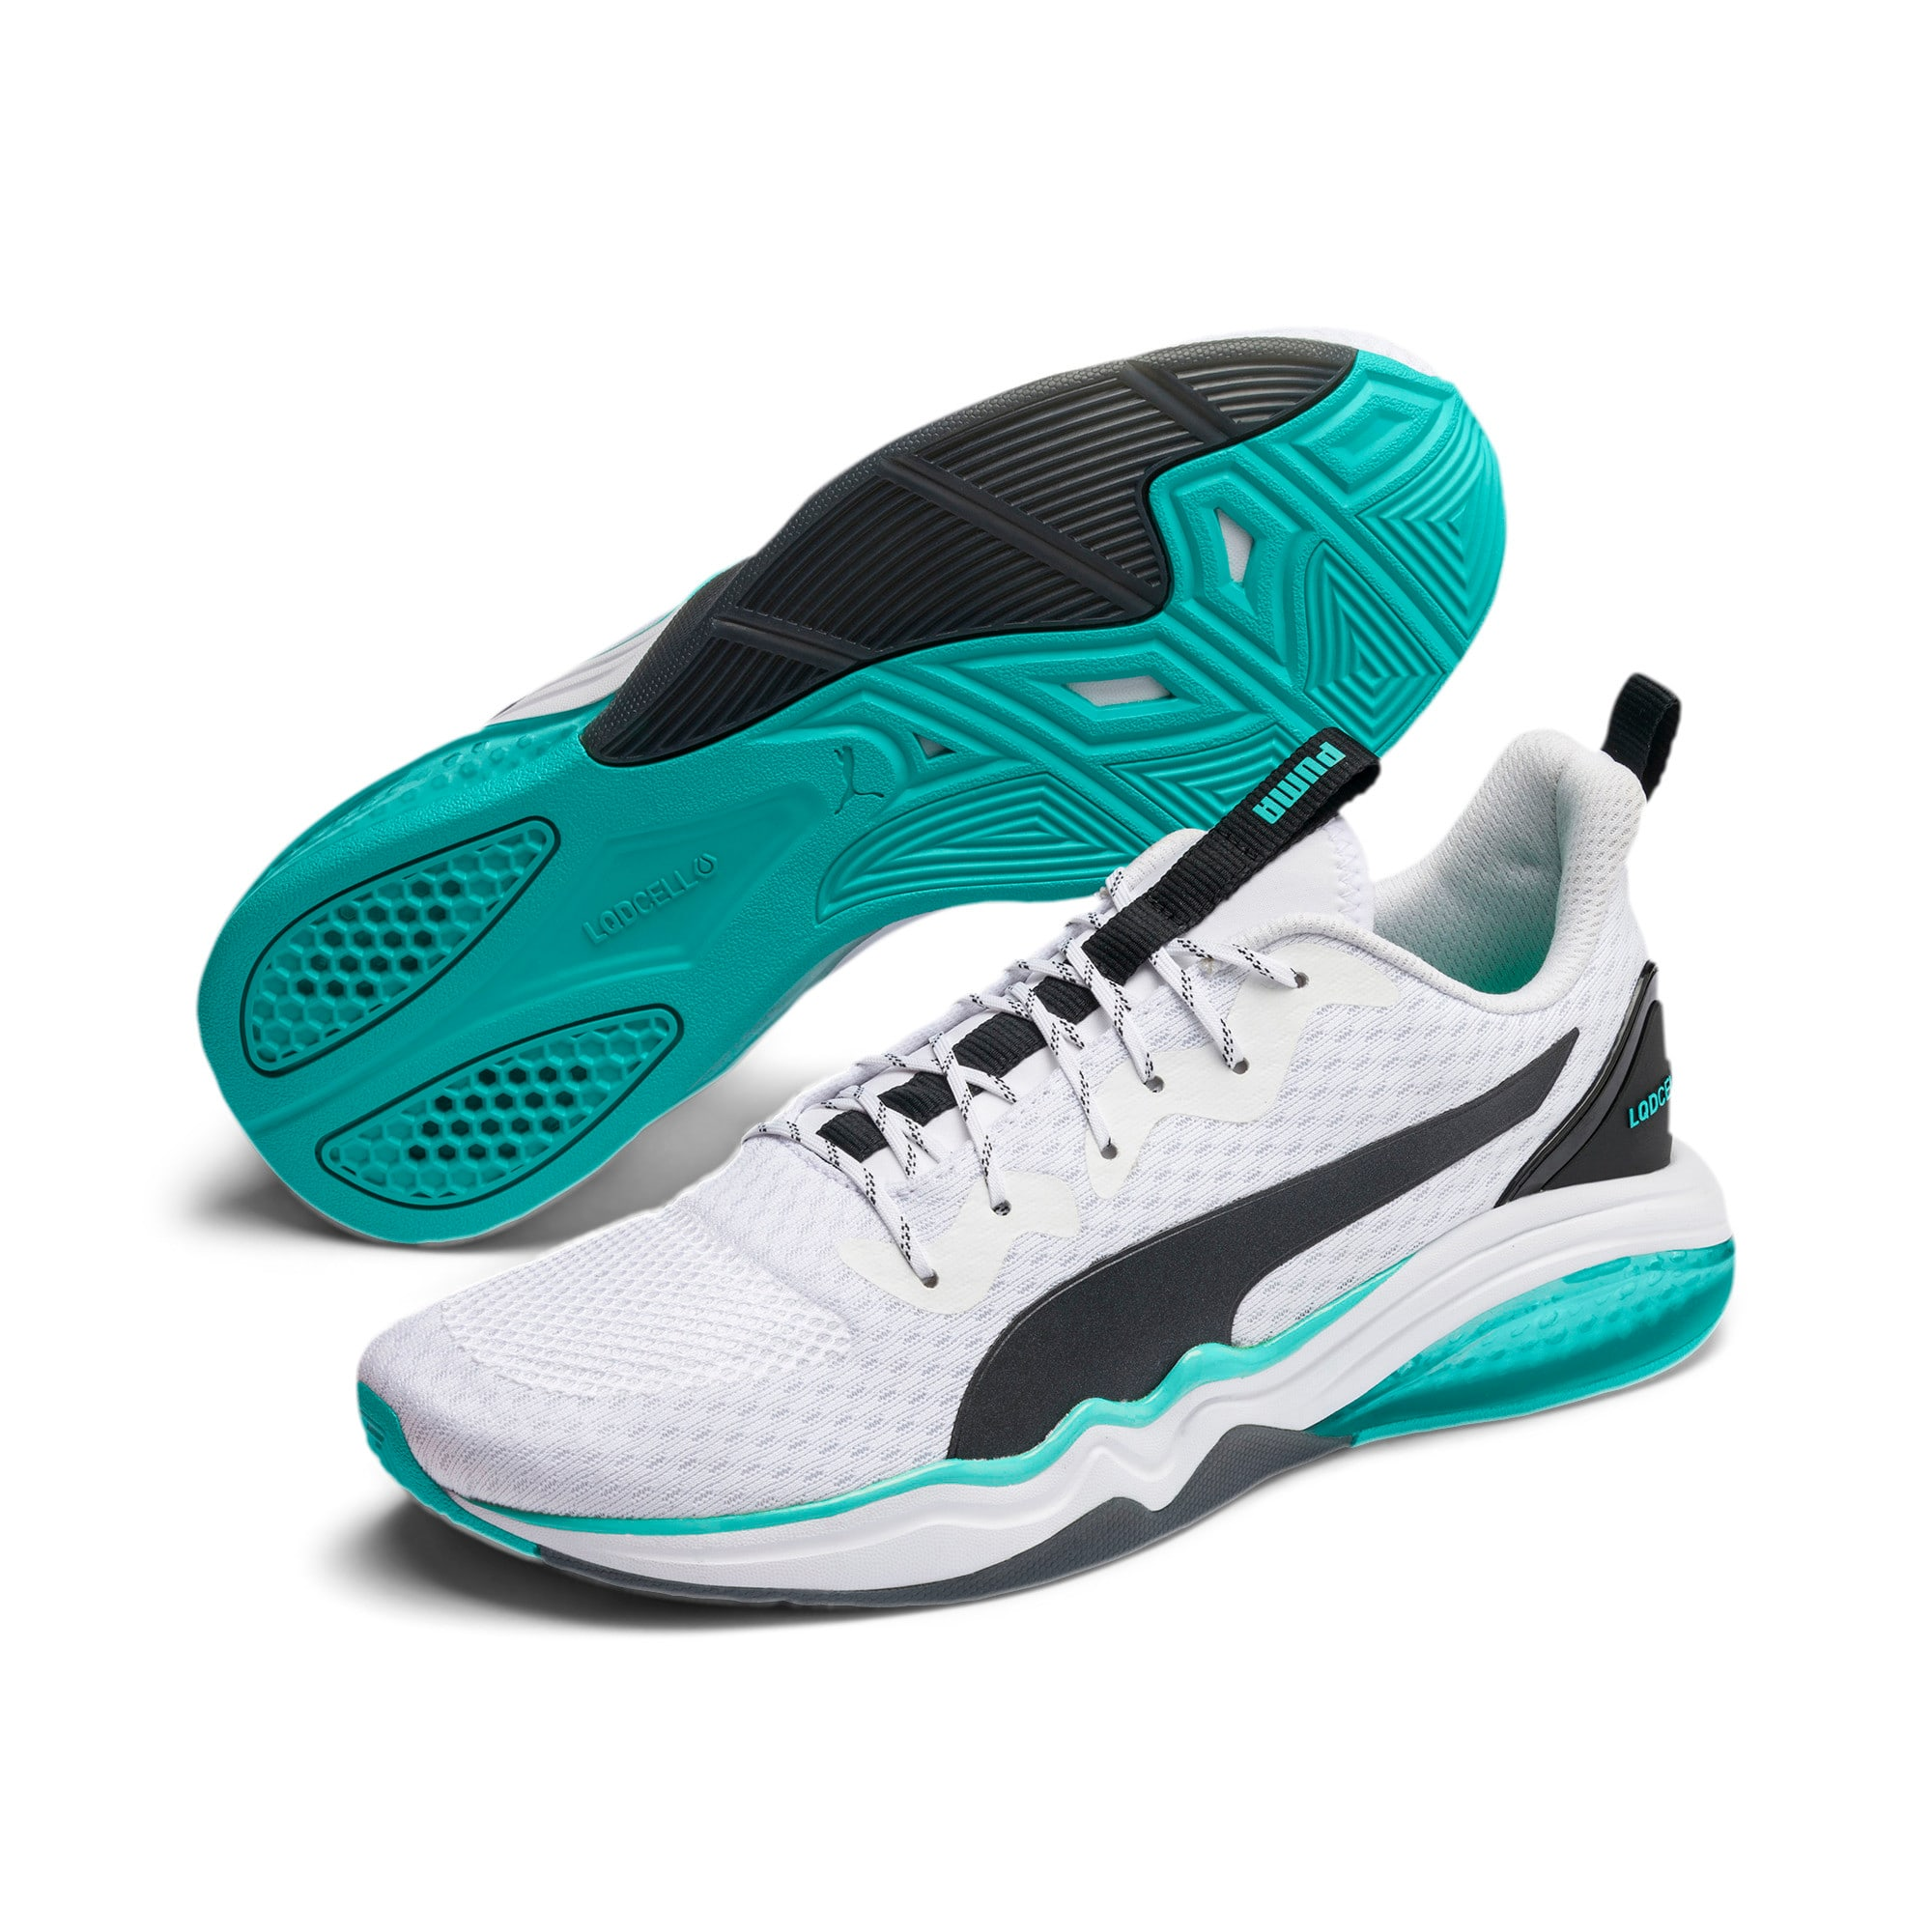 LQDCELL Tension Men's Training Shoes, Puma White-Blue Turquoise, large